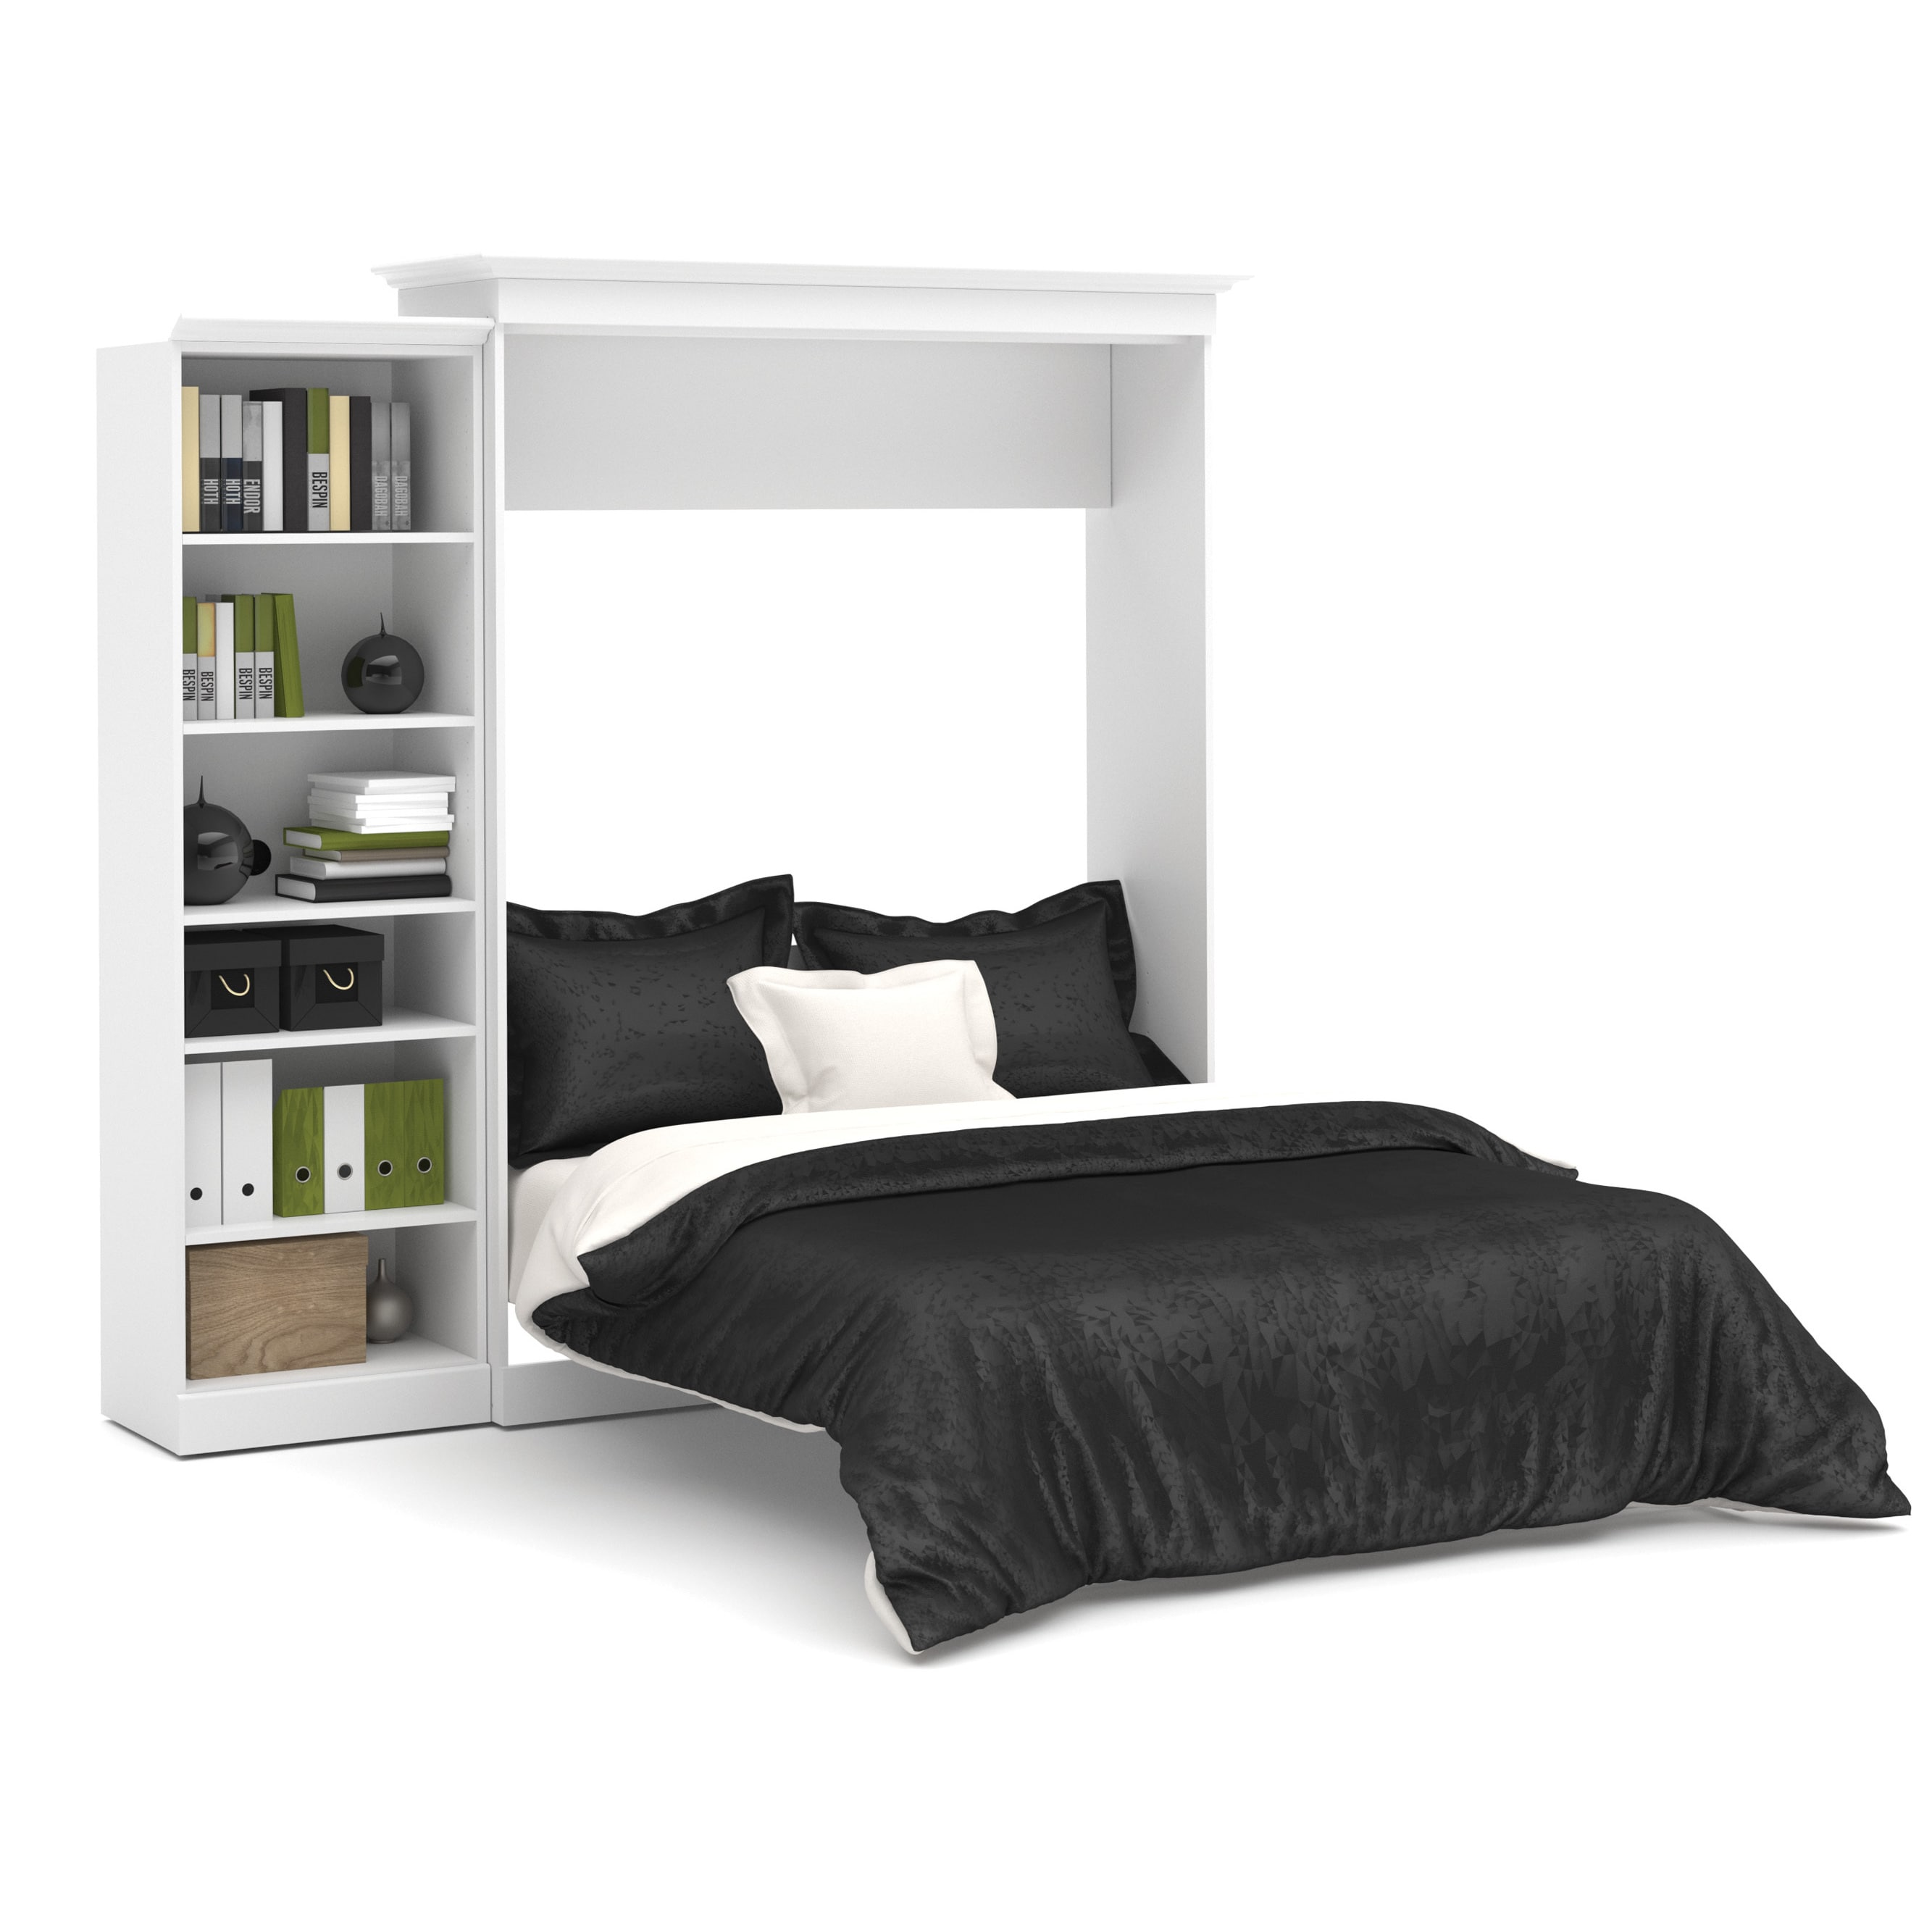 Versatile by Bestar 92-inch Queen-size Wall Bed Kit (Whit...